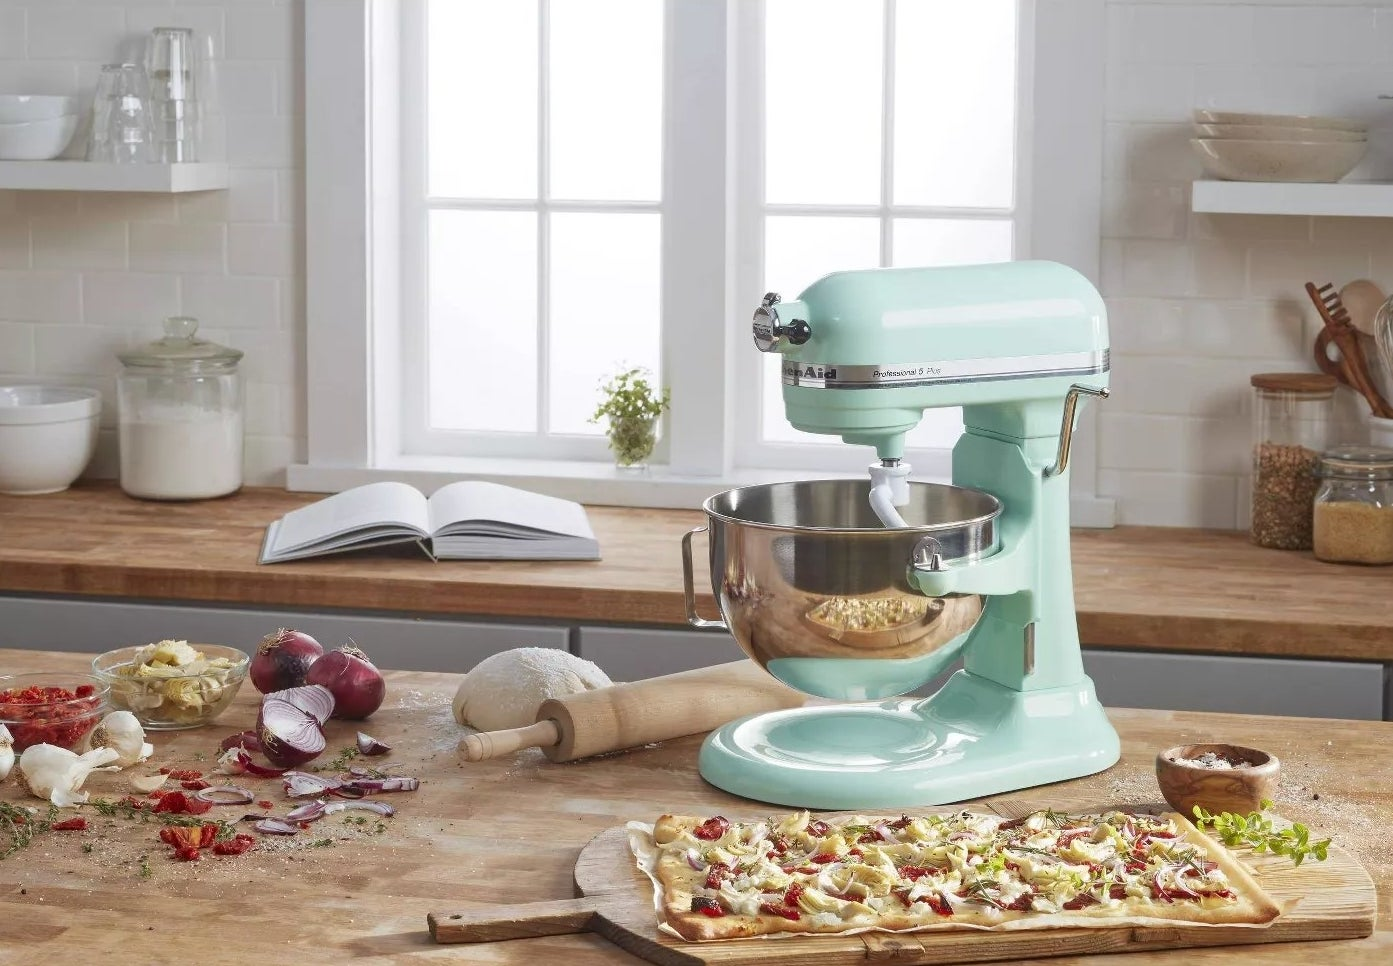 The mixer on a kitchen counter making pizza dough